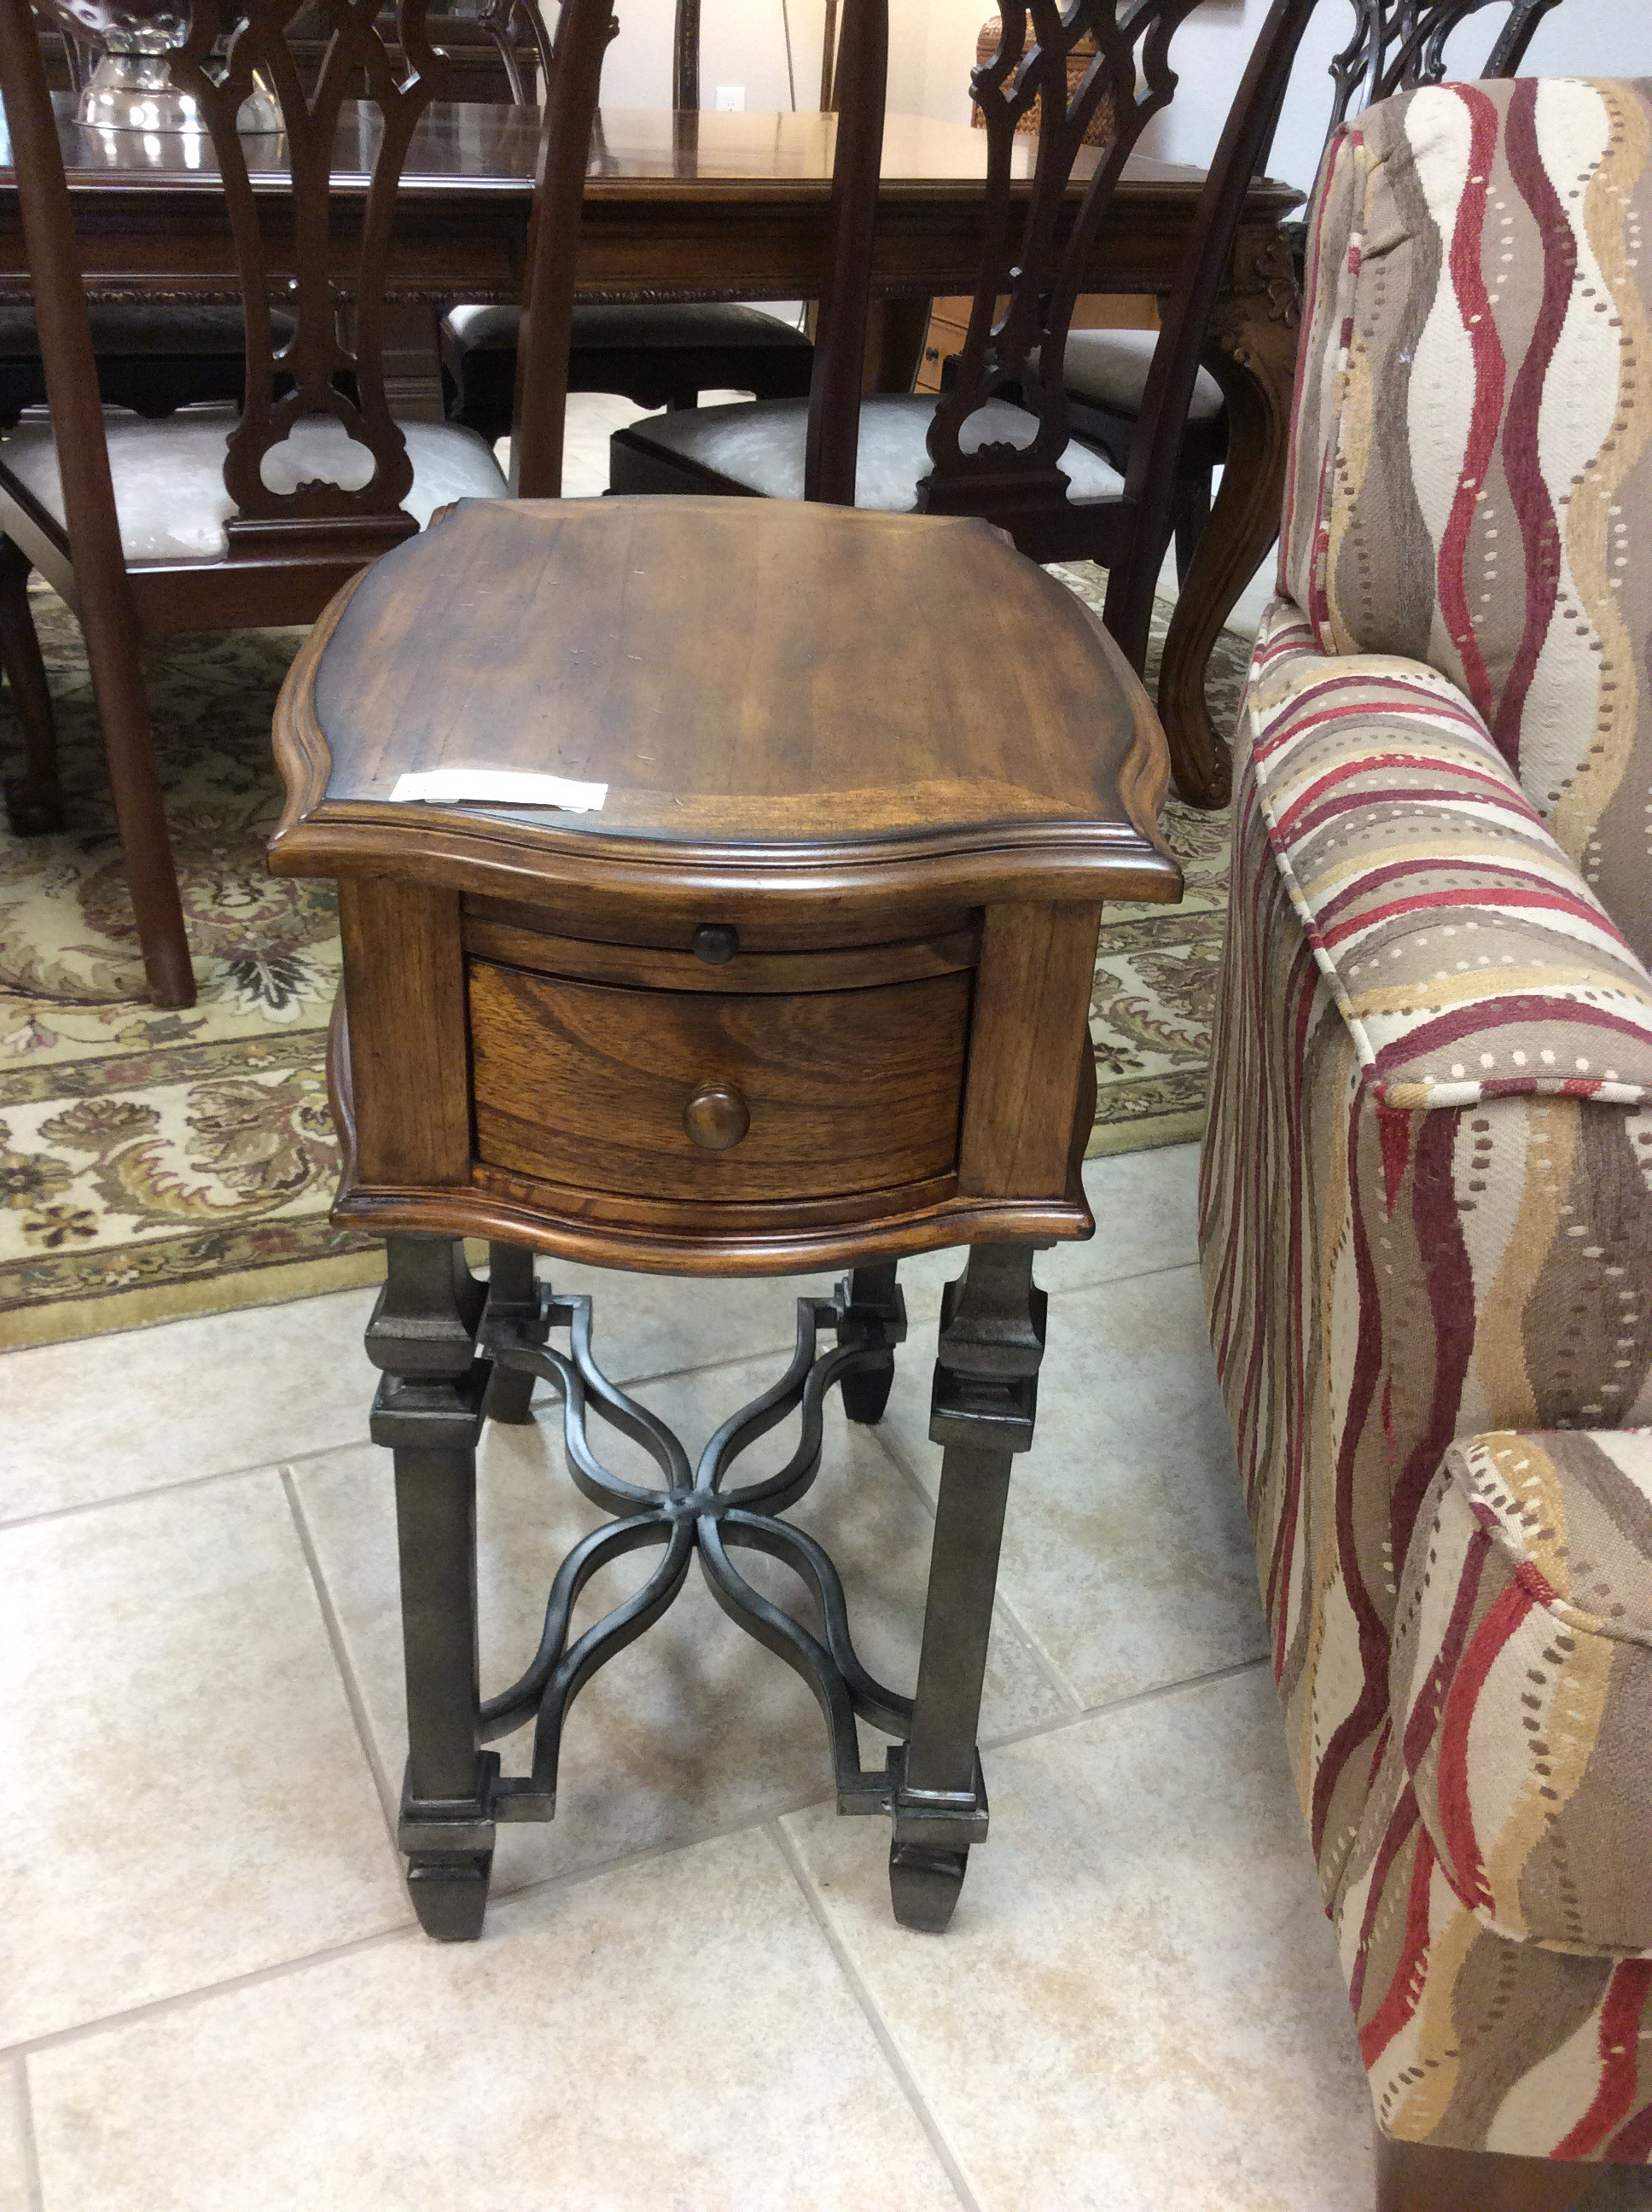 This is a really smart looking side table. The solid iron base has a pretty, gun metal gray finish. The solid wood top is shaped like a quatrafoil and has both a pull out drink tray, and a single drawer. There is also a matching larger side table that is available for purchase seperately.